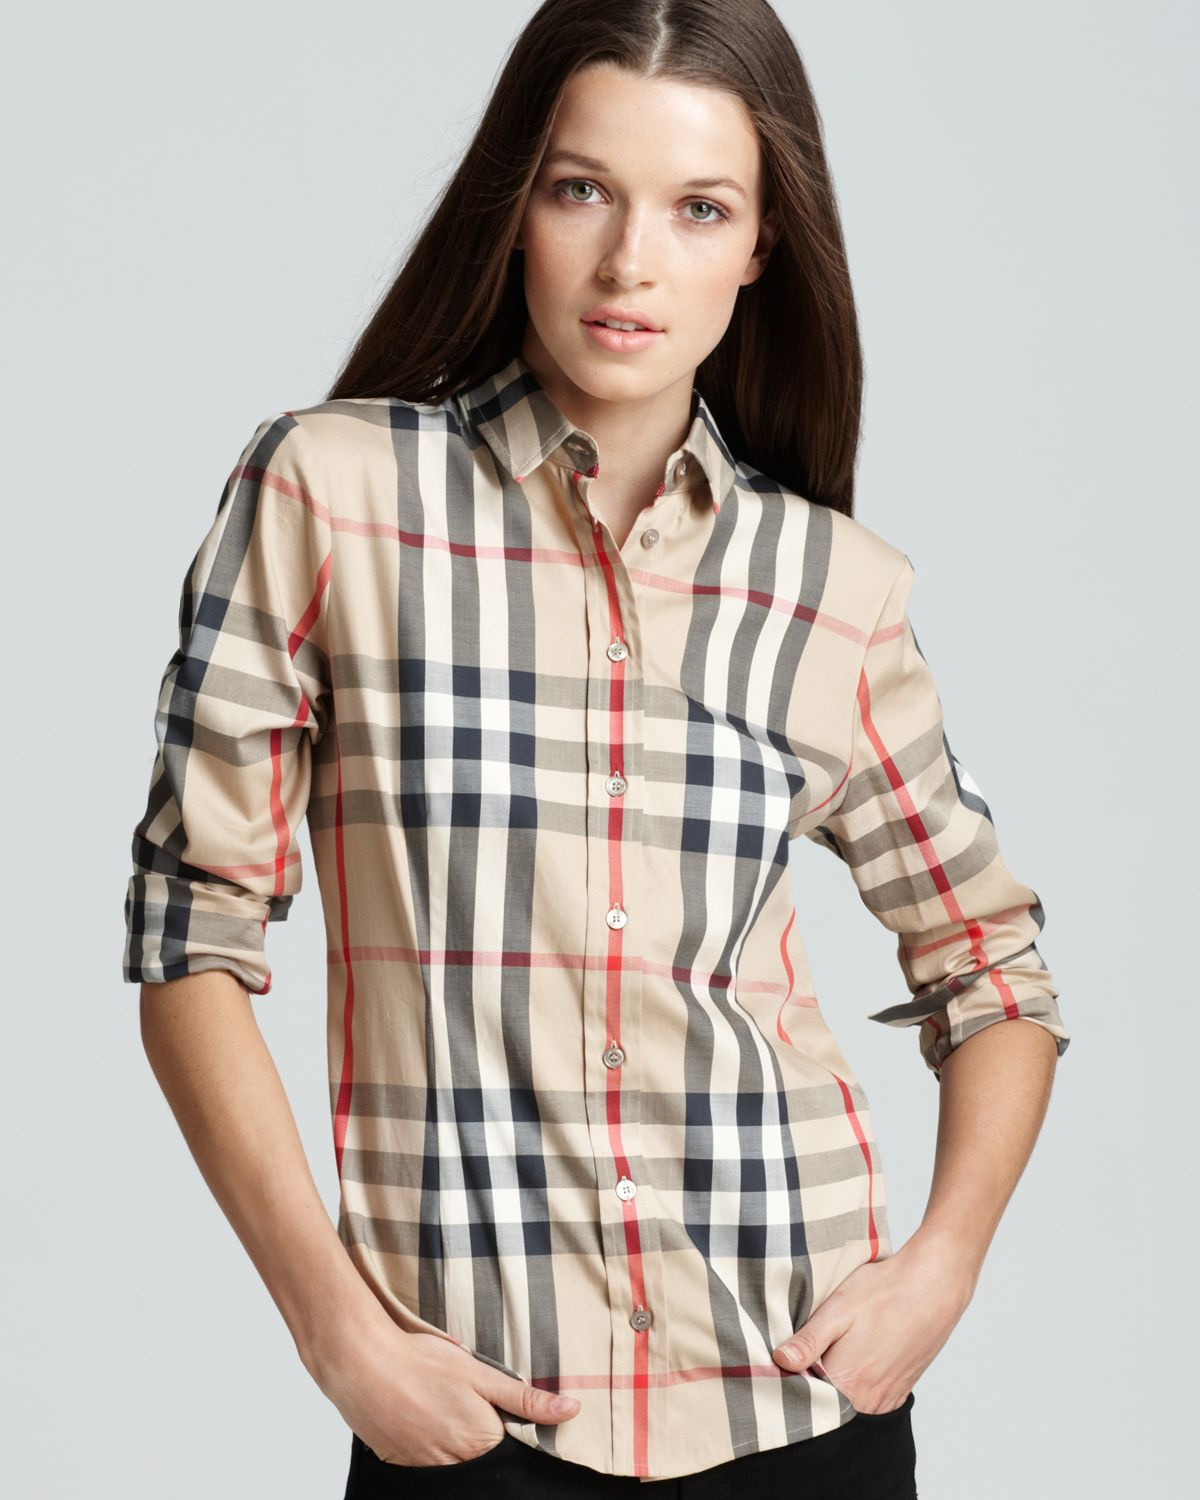 Lyst burberry woven exploded check shirt in natural for Burberry shirt size chart